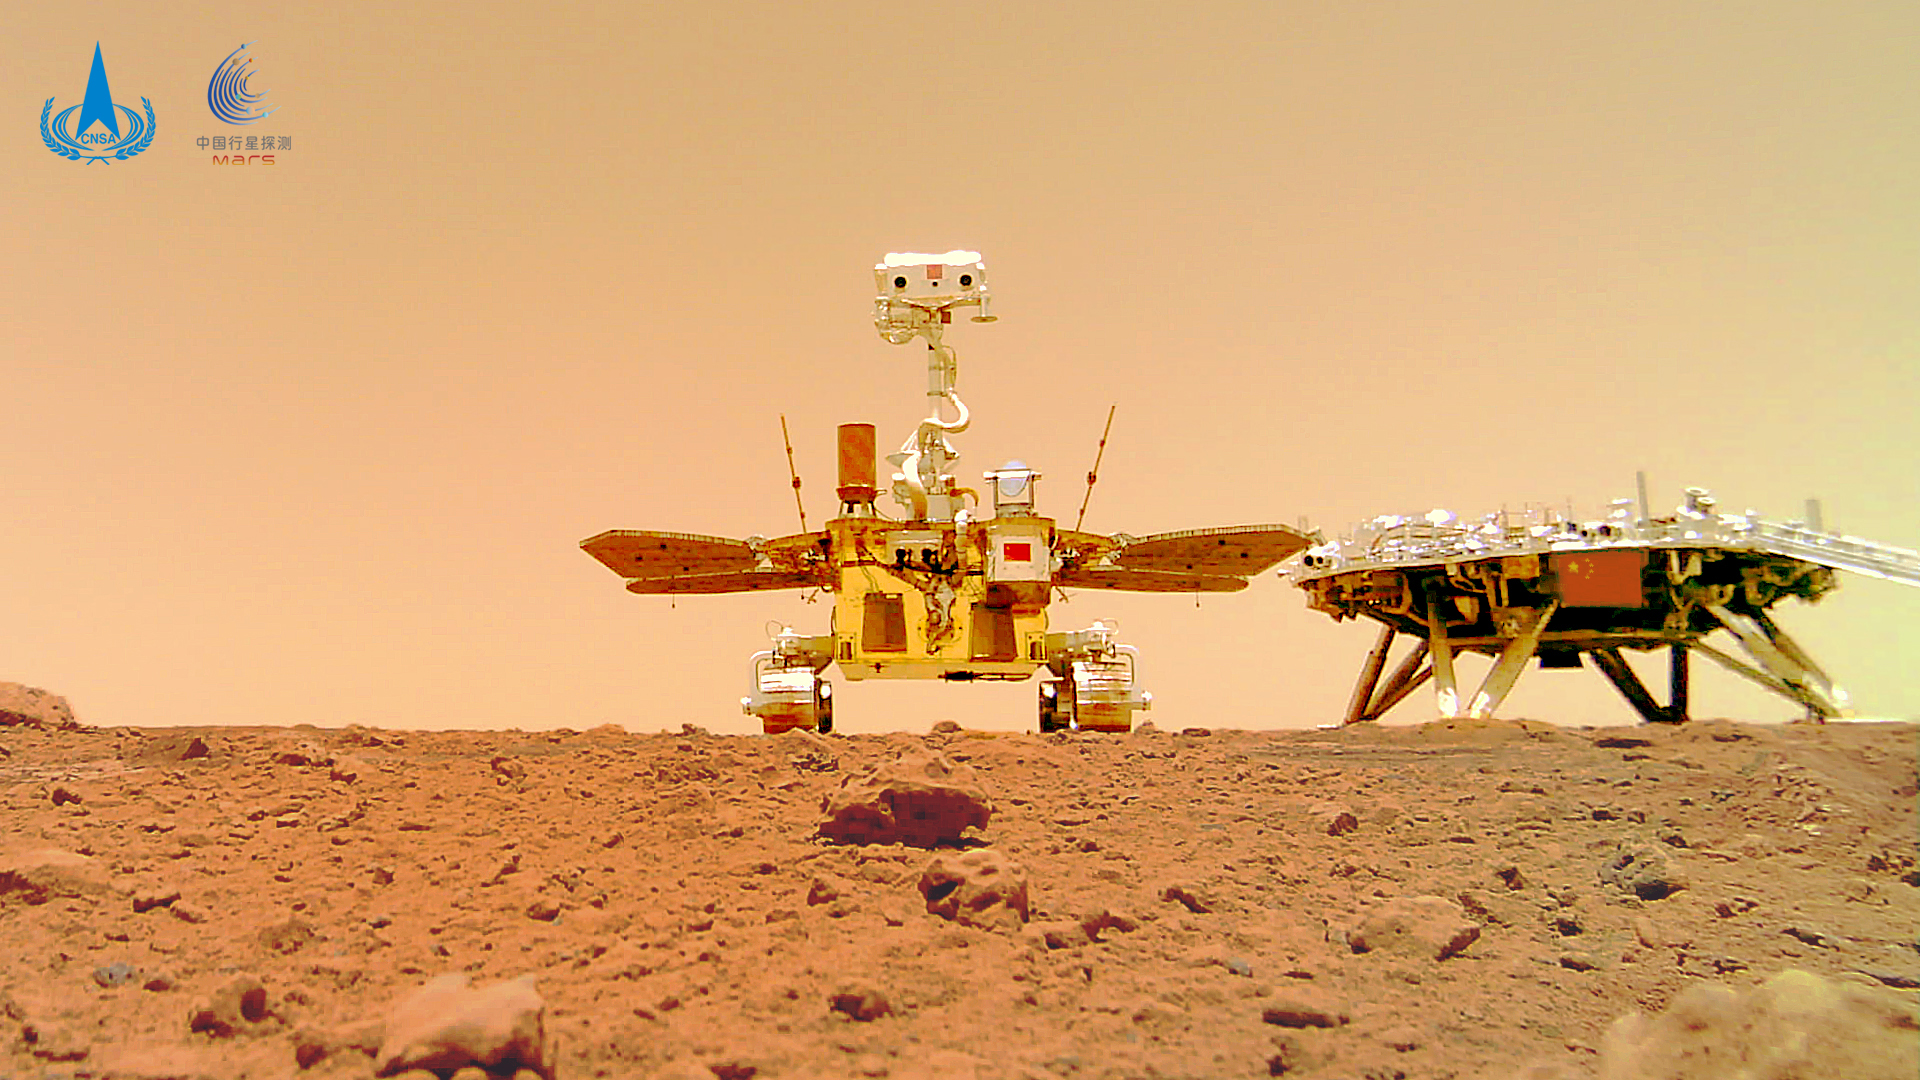 <p>China's Mars rover Zhurong just snapped an epic self-portrait on the Red Planet (Photographs ) thumbnail